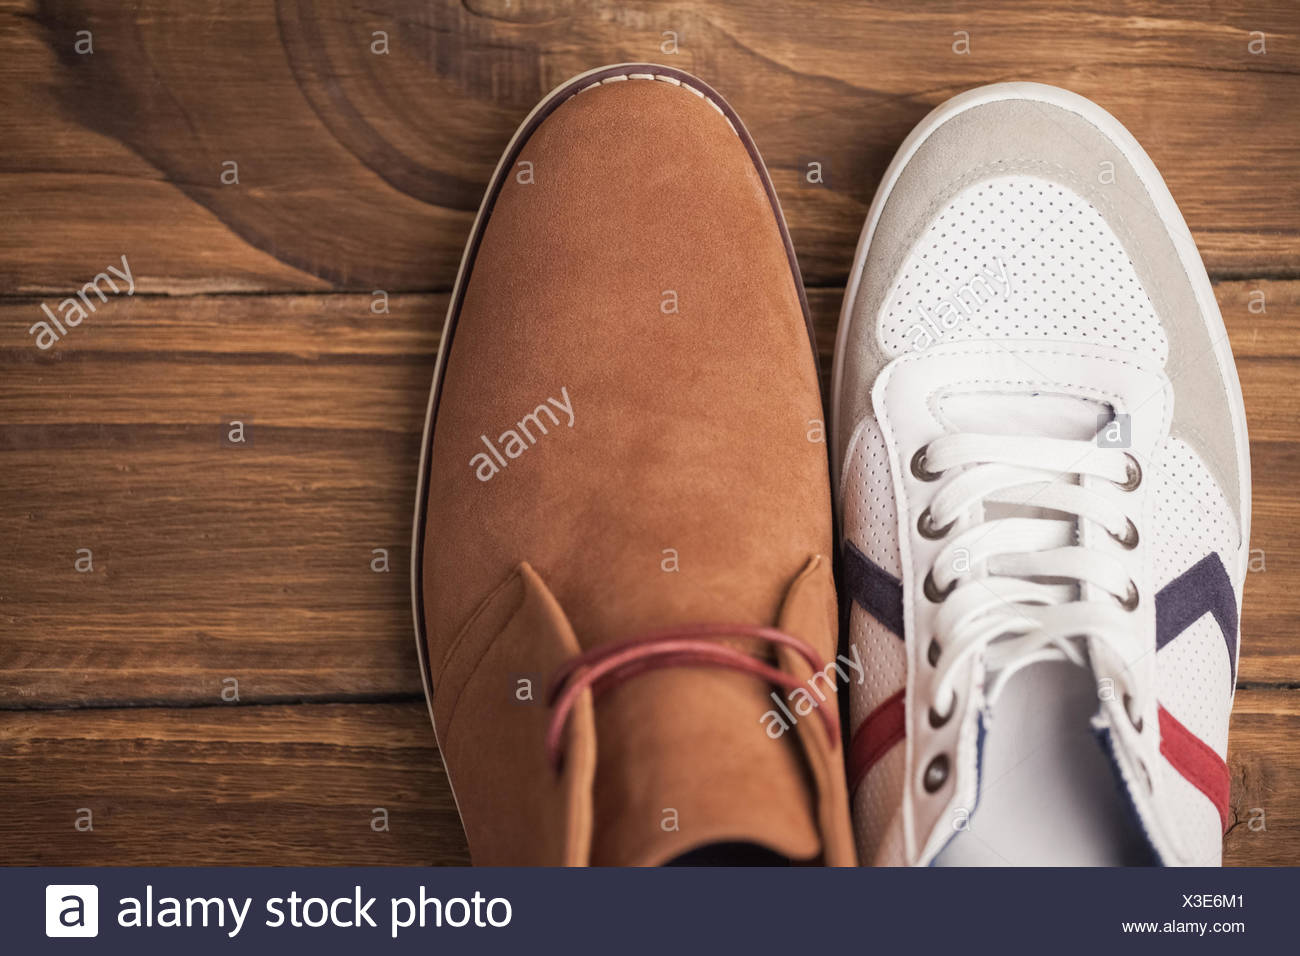 Casual and dressy mens shoes Stock Photo: 277522449 Alamy